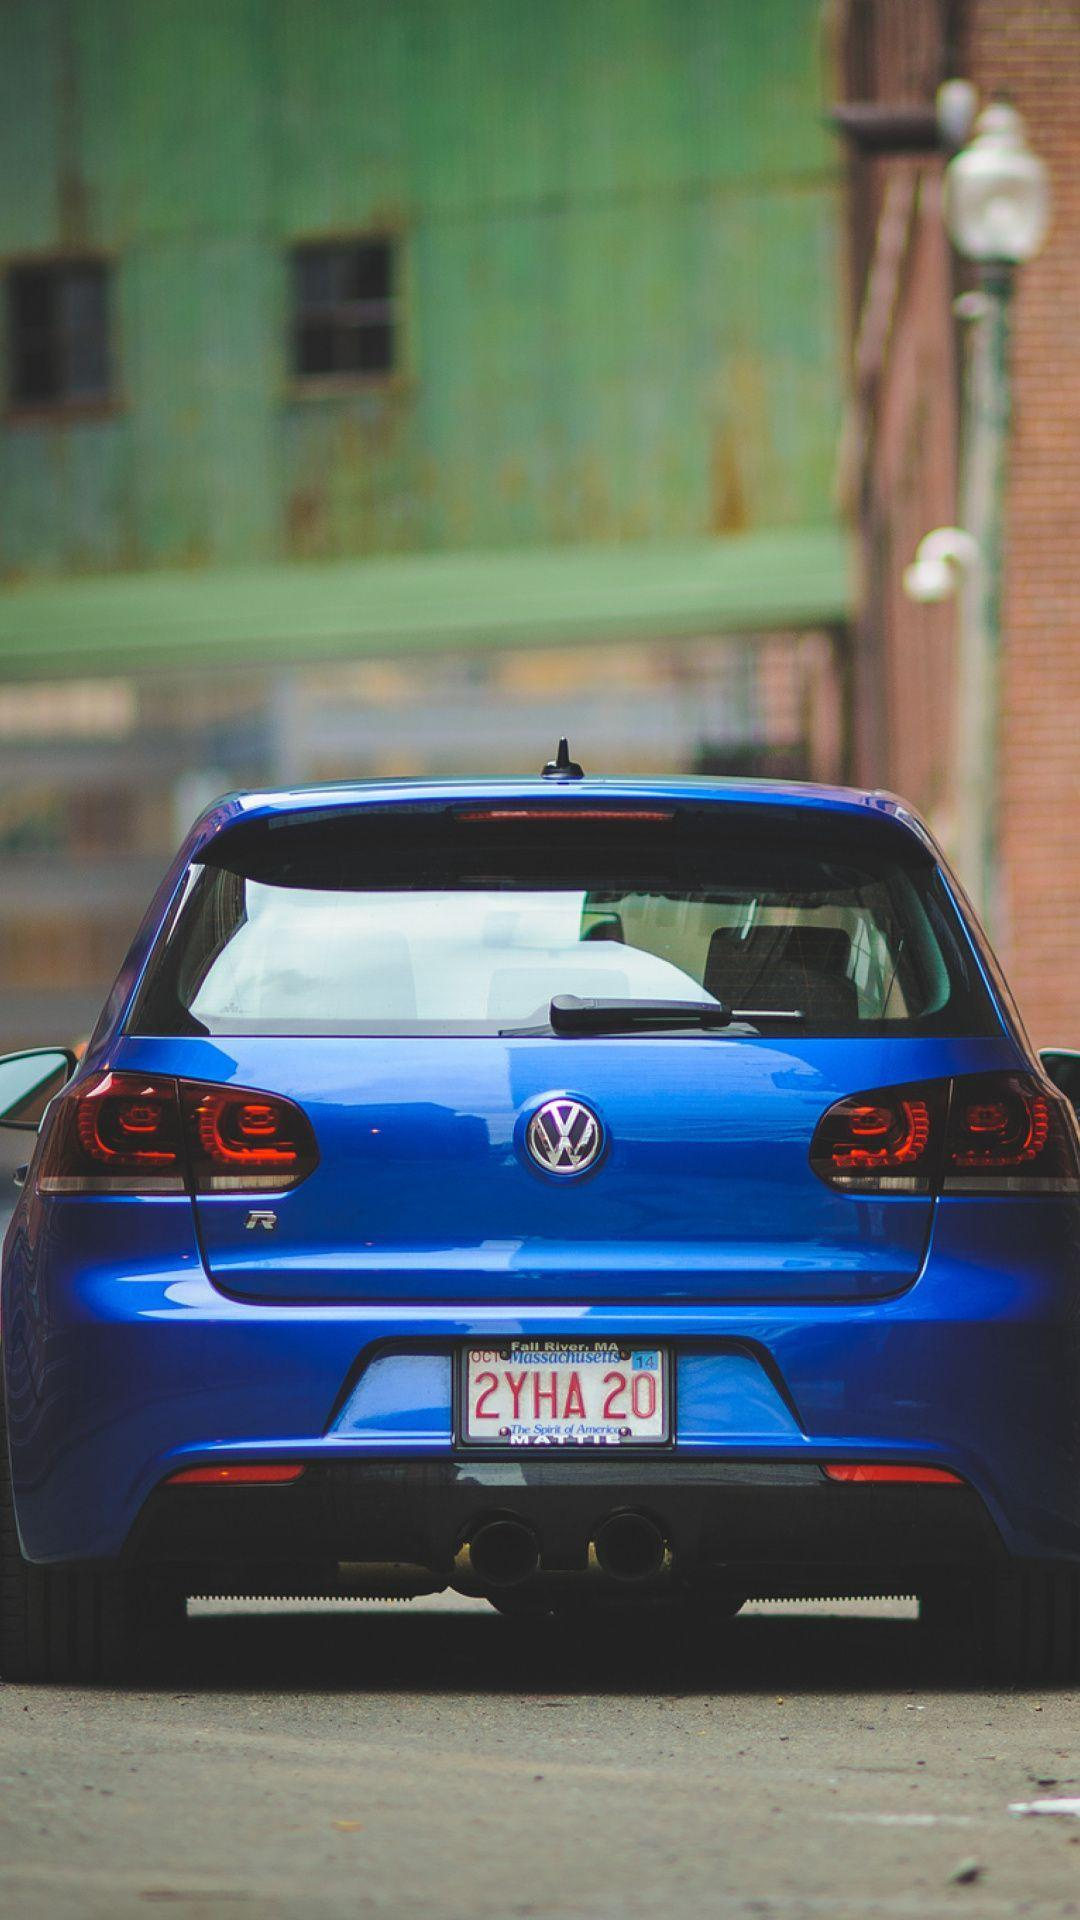 Volkswagen Golf R Wallpaper for iPhone 6 Plus | Images Wallpapers ...